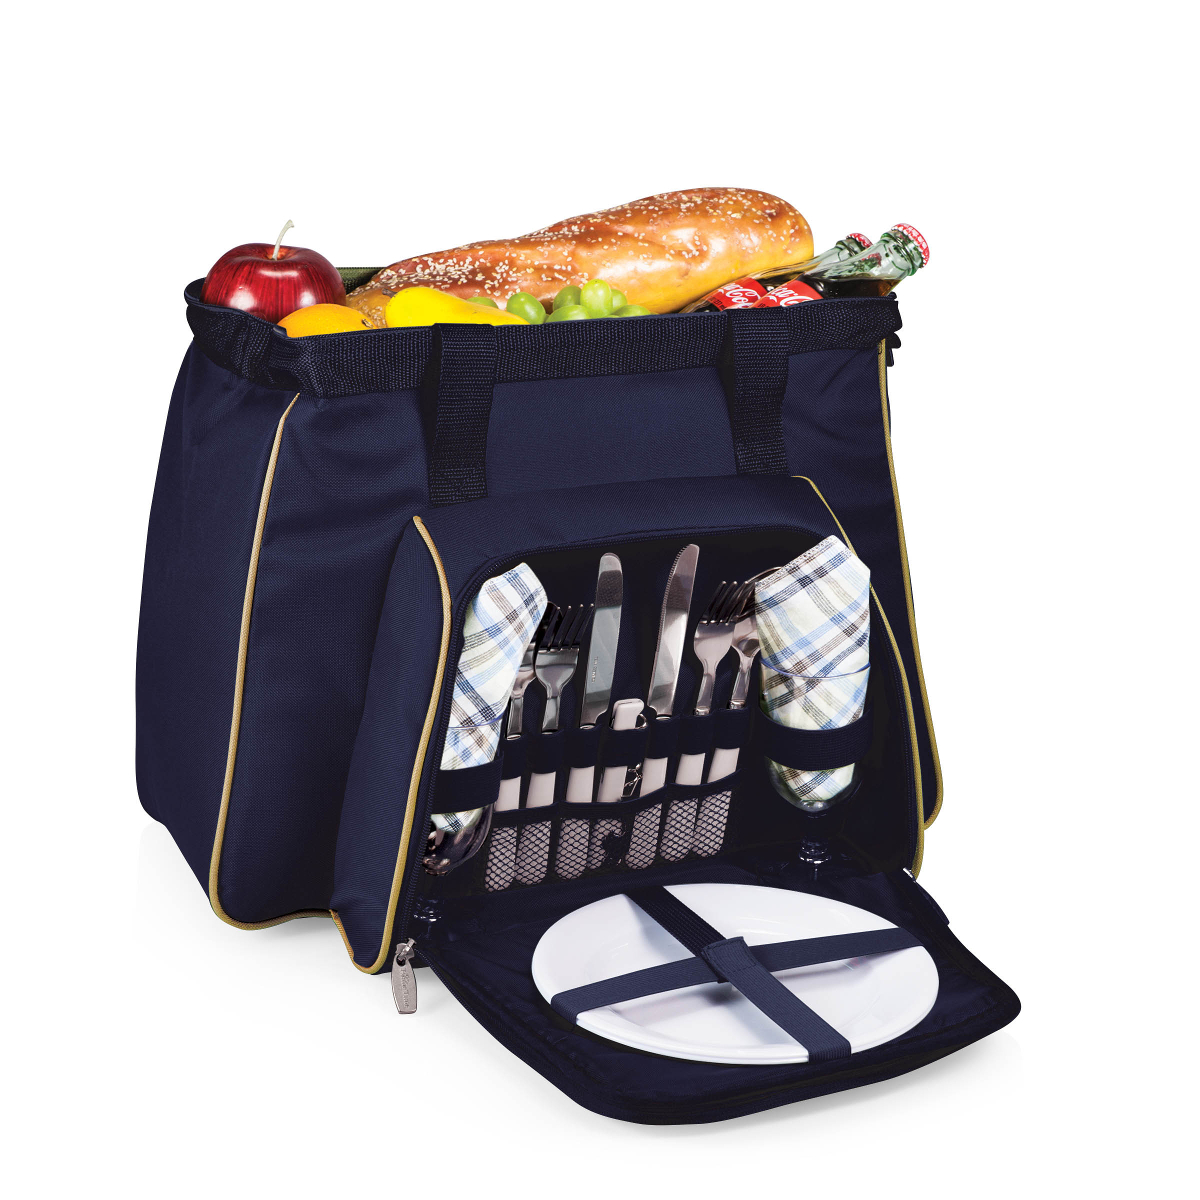 Picnic Time Toluca Navy Blue and Tan Cooler